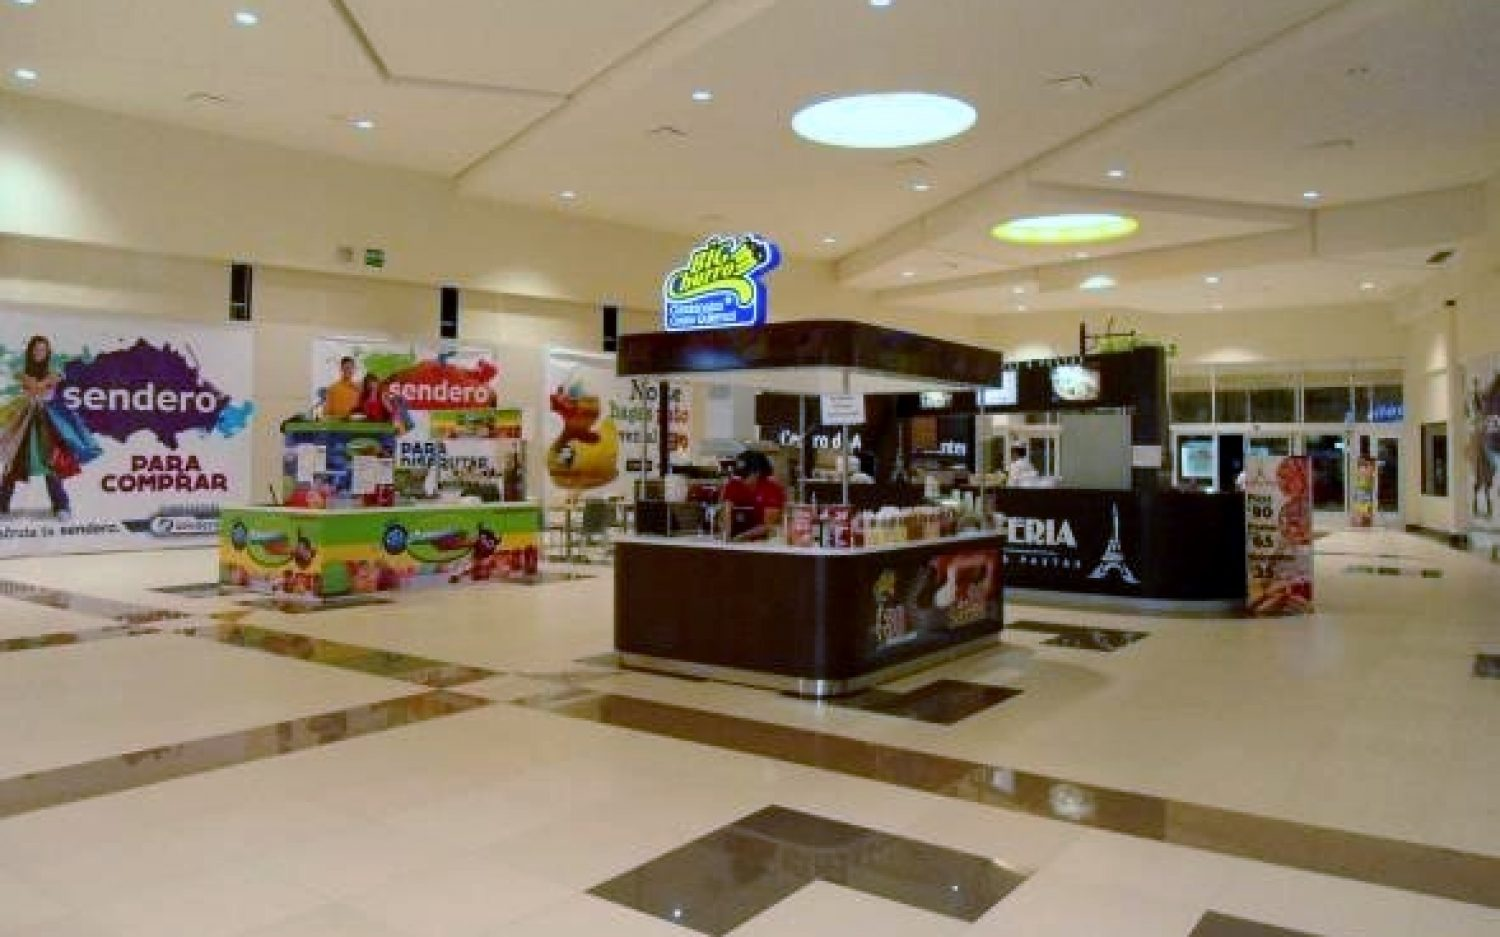 Co-Plaza Sendero Villahermosa (38)